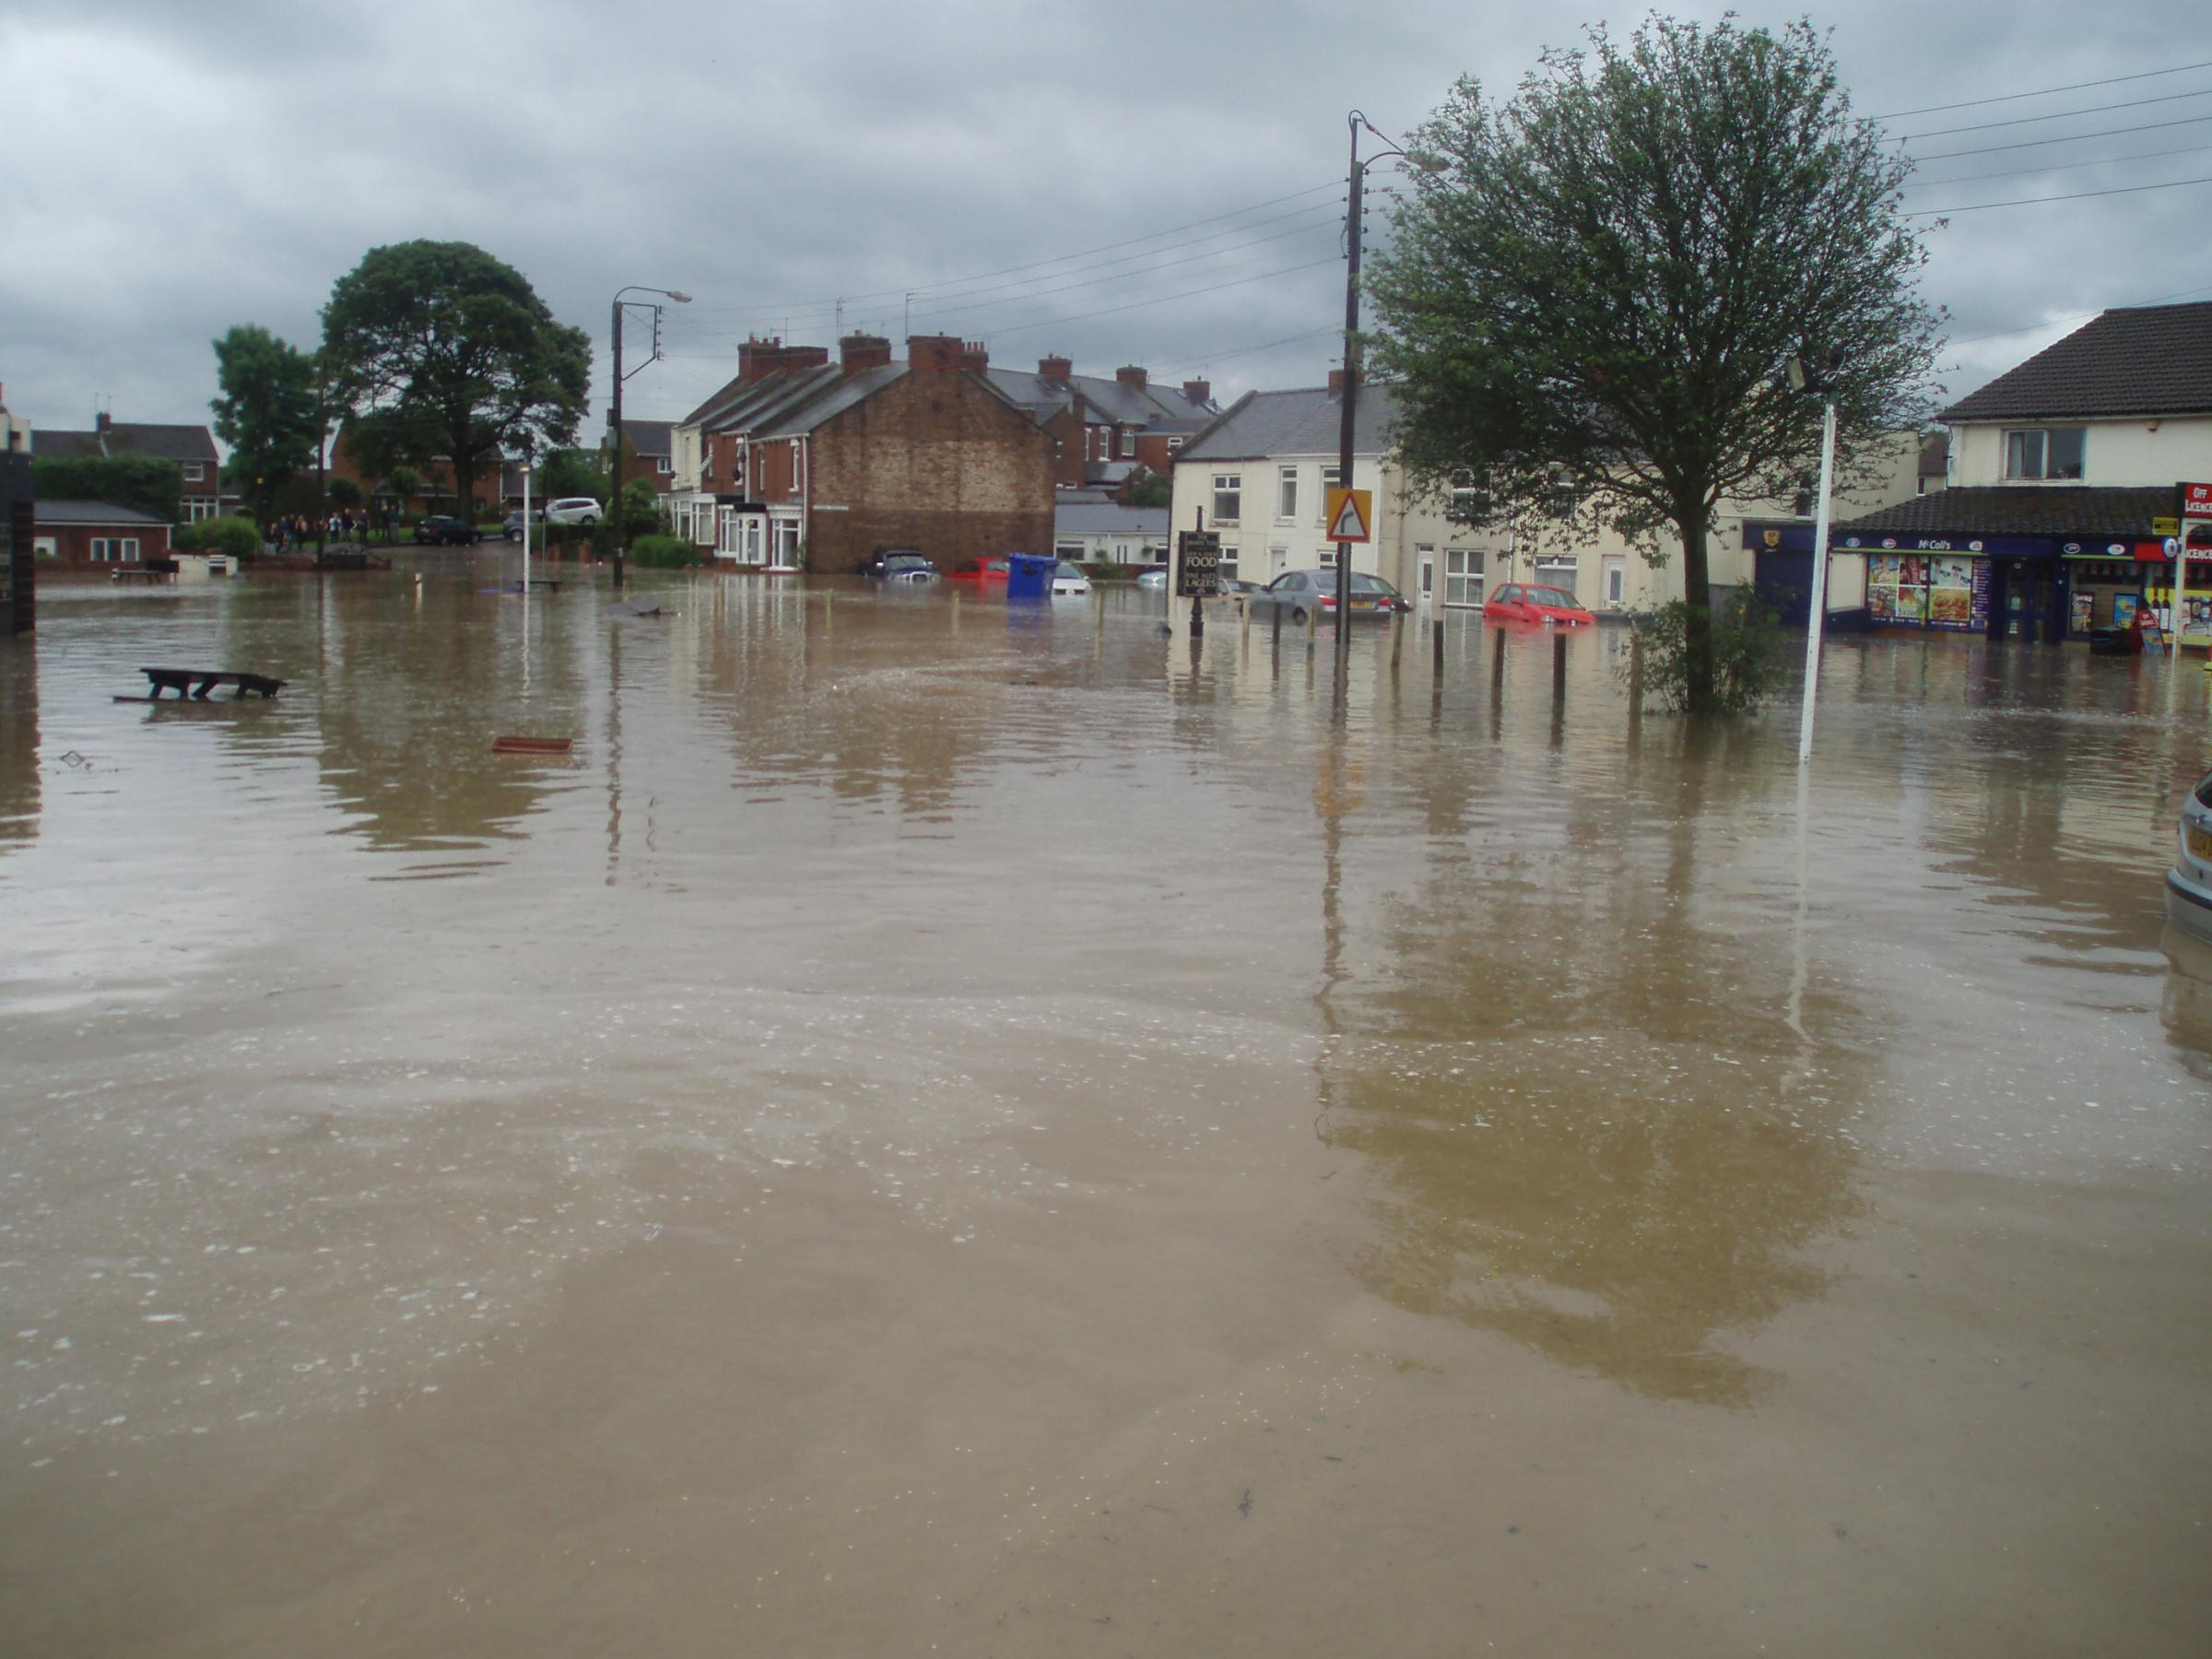 Flooding has caused havoc in the south of England this year